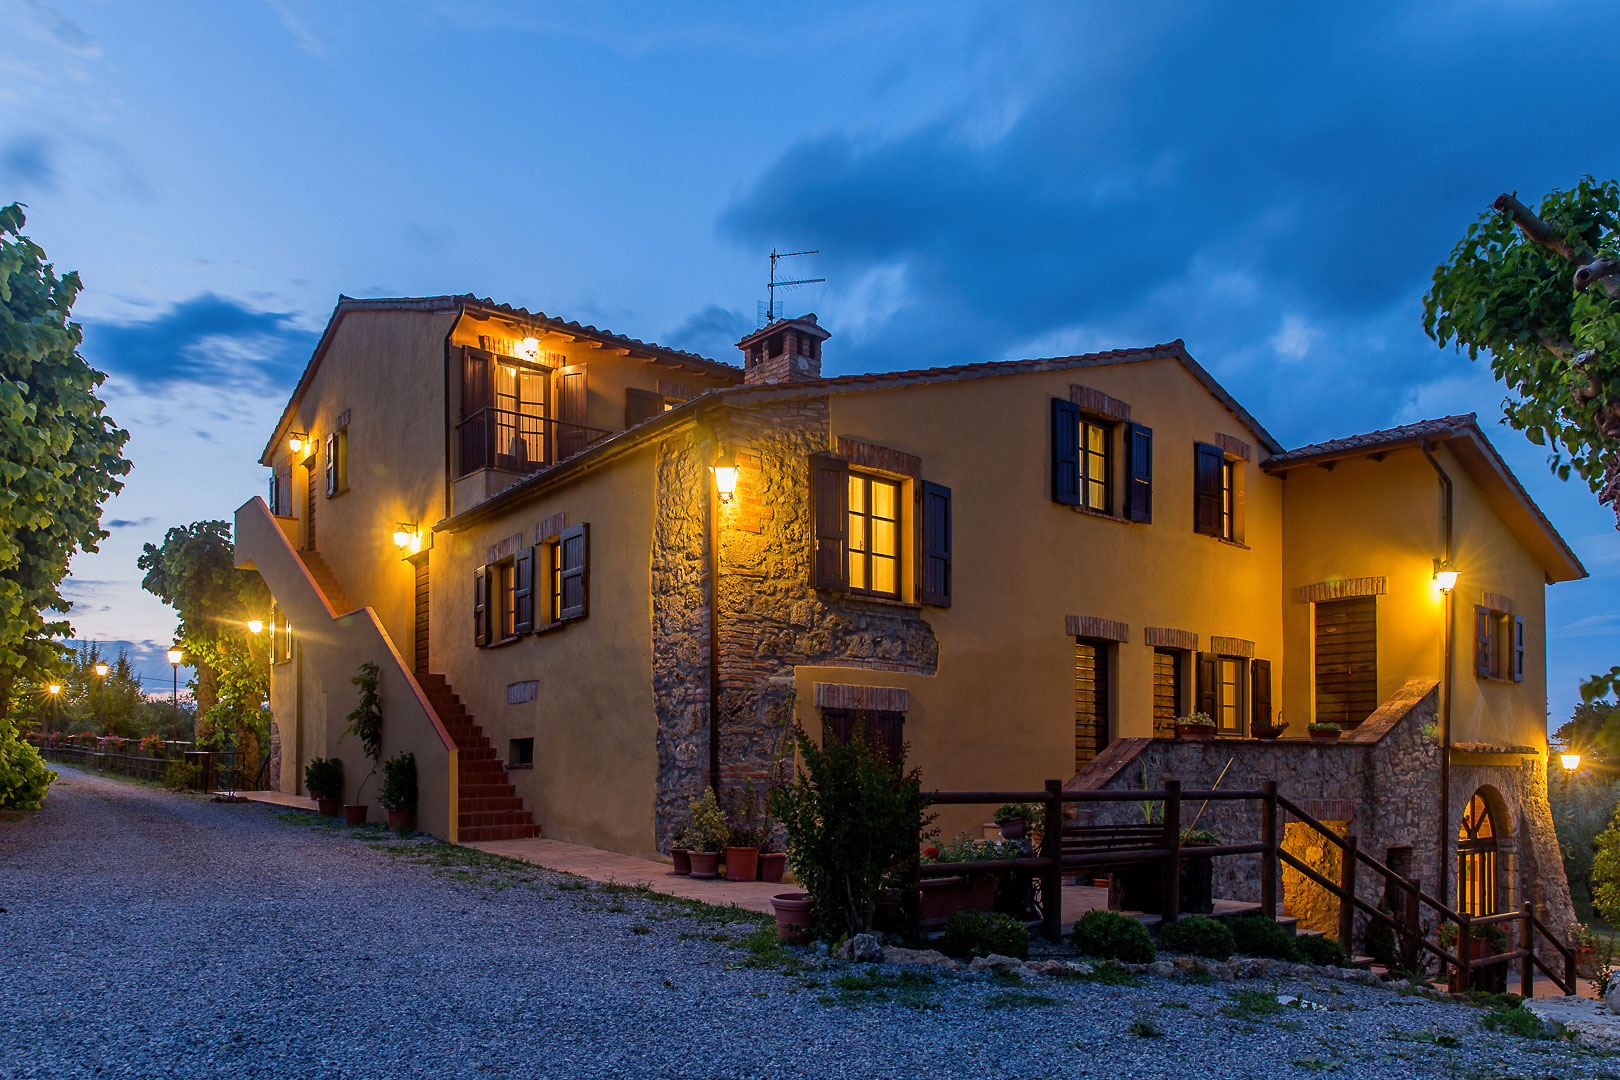 Agriturismo Le Anfore Toscana